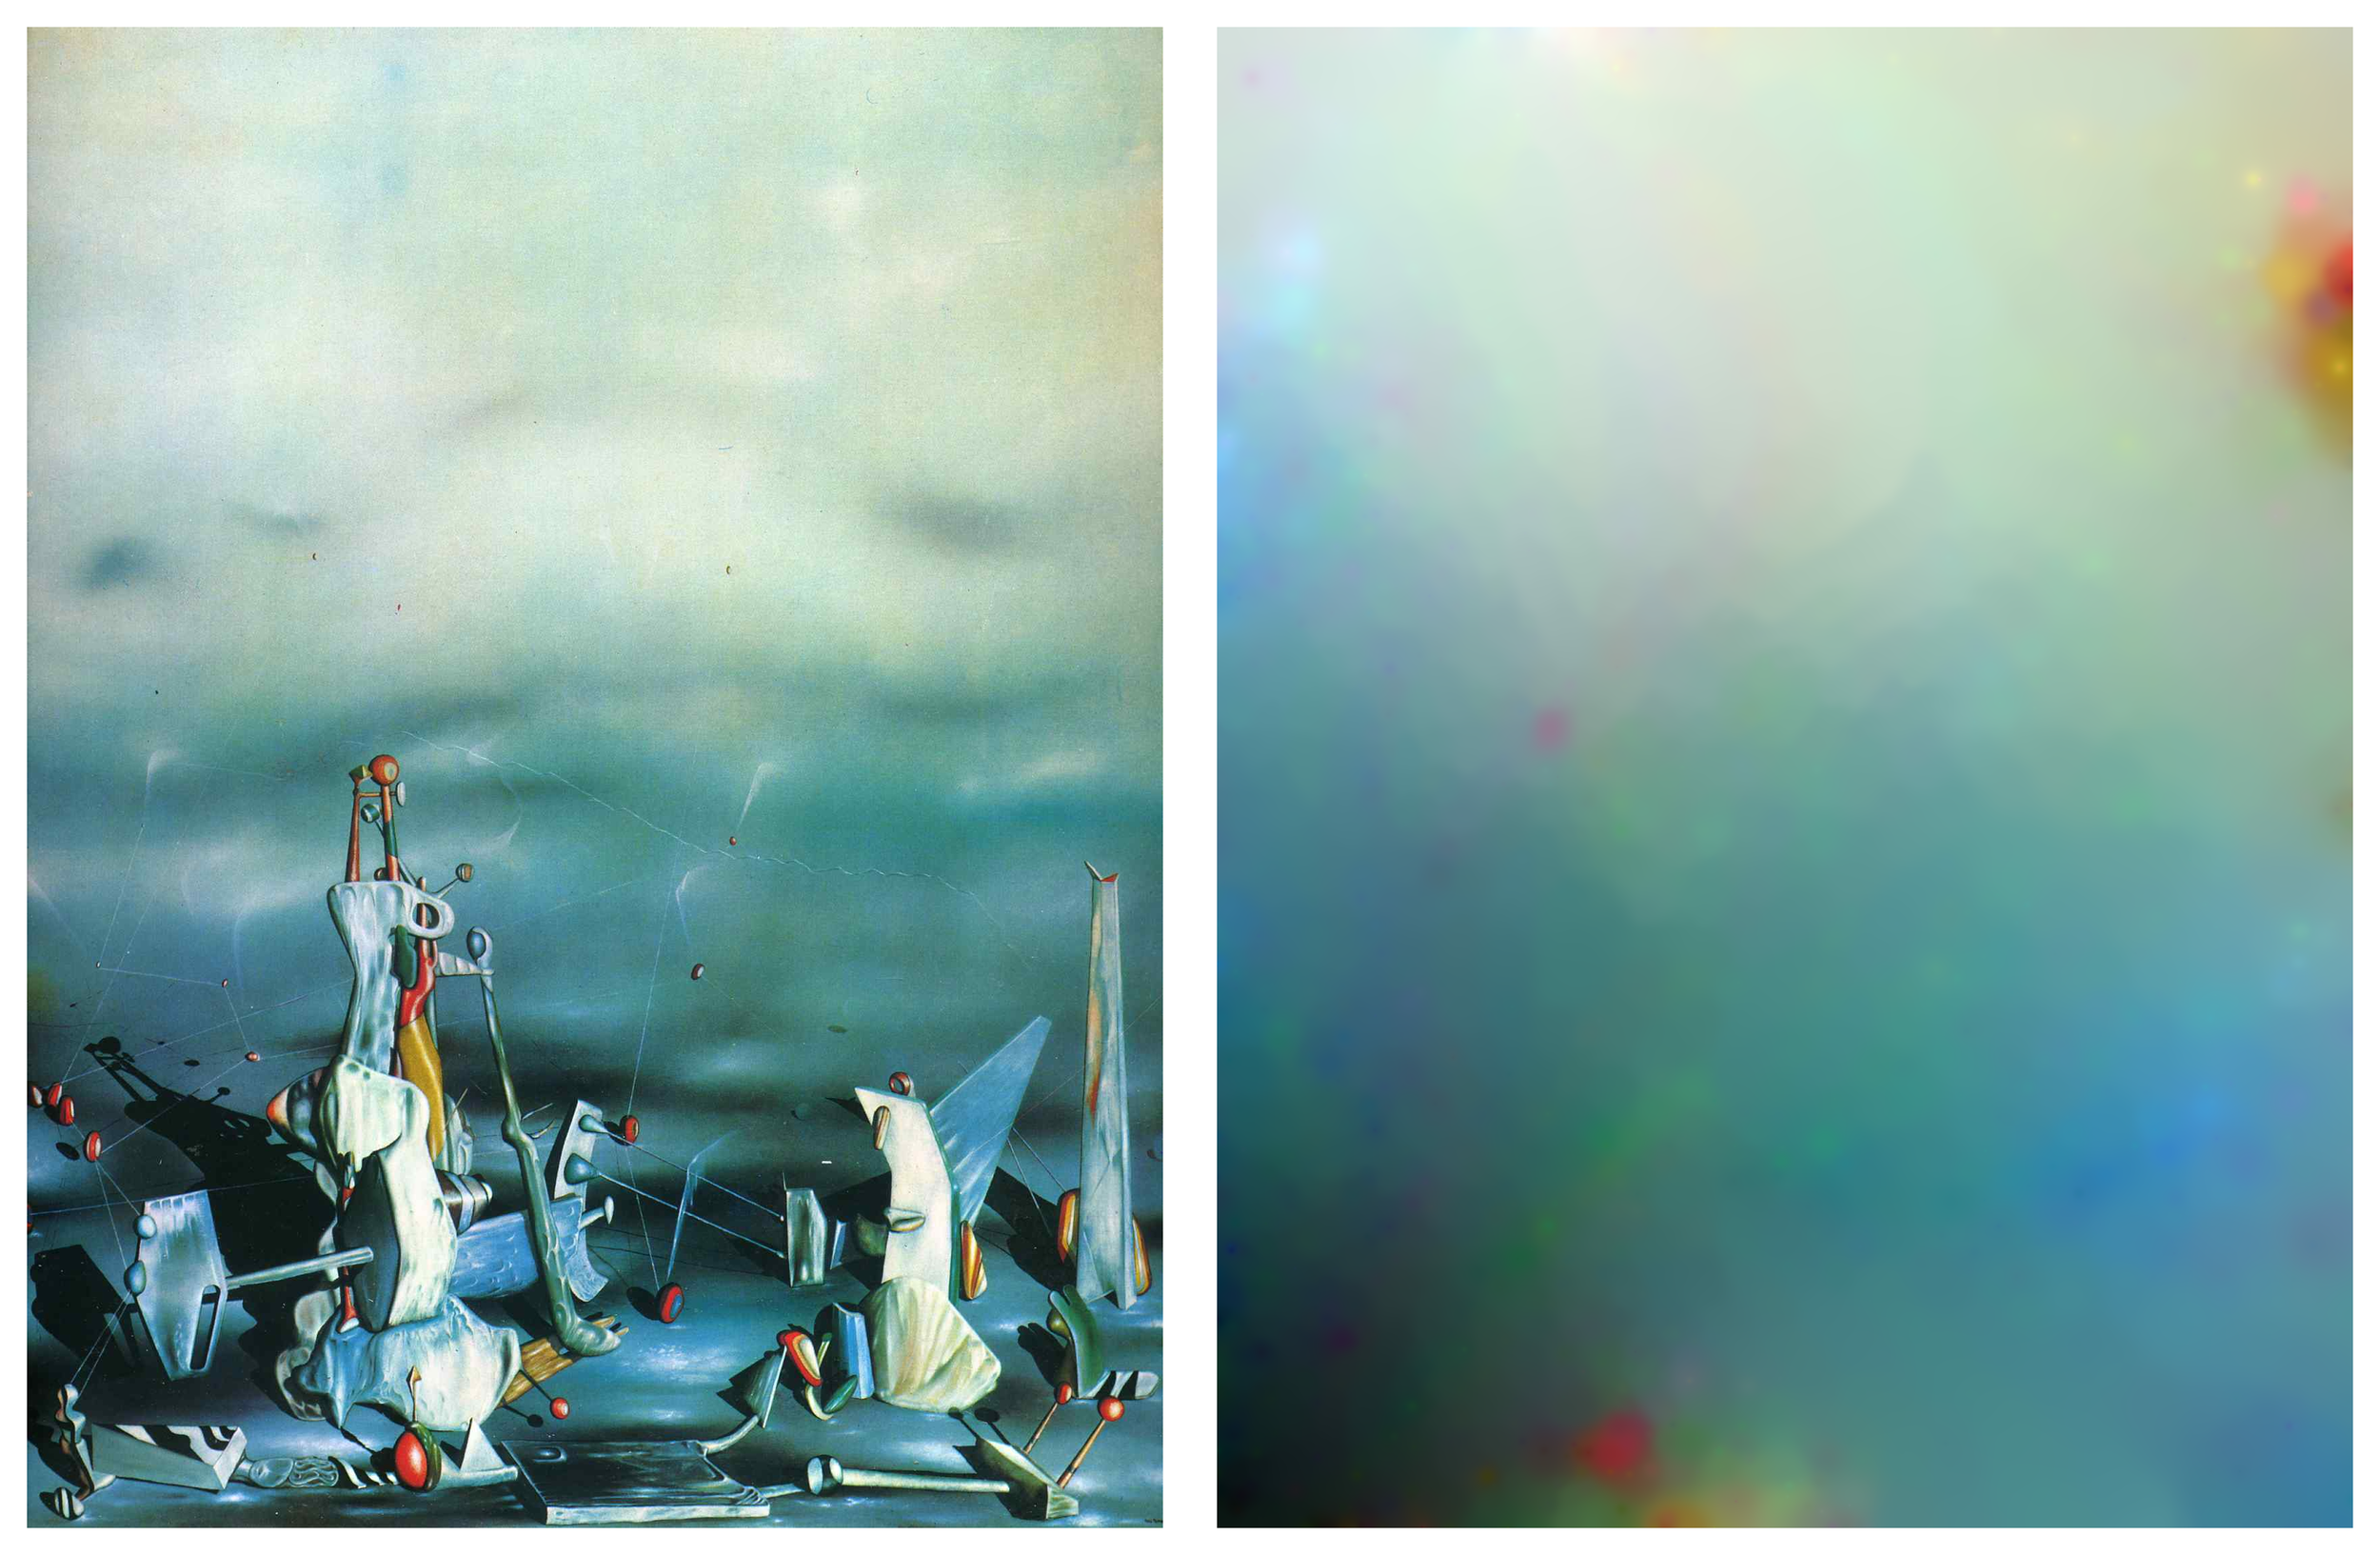 Palace of Windowed Rocks . (left) Yves Tanguy (1942).  Machines of the Present Consume the Imaginations of the Past , (right) work in progress (2016). Image courtesy of the artist.